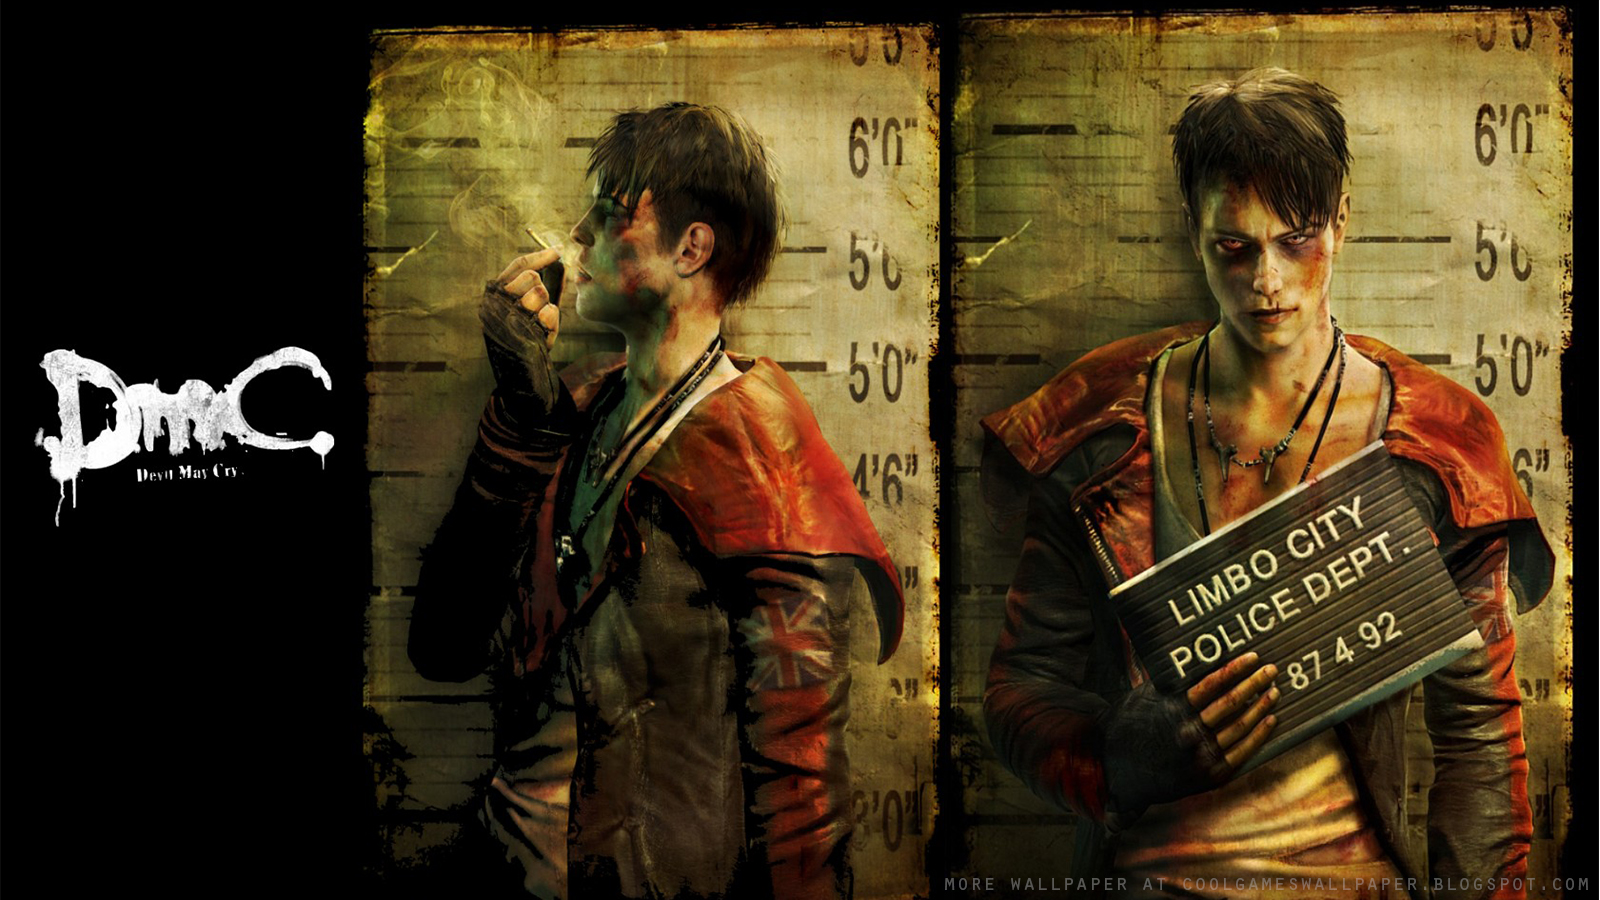 Dmc devil may cry 2013 wallpaper cool games wallpaper devil may cry 2013 wallpaper voltagebd Images